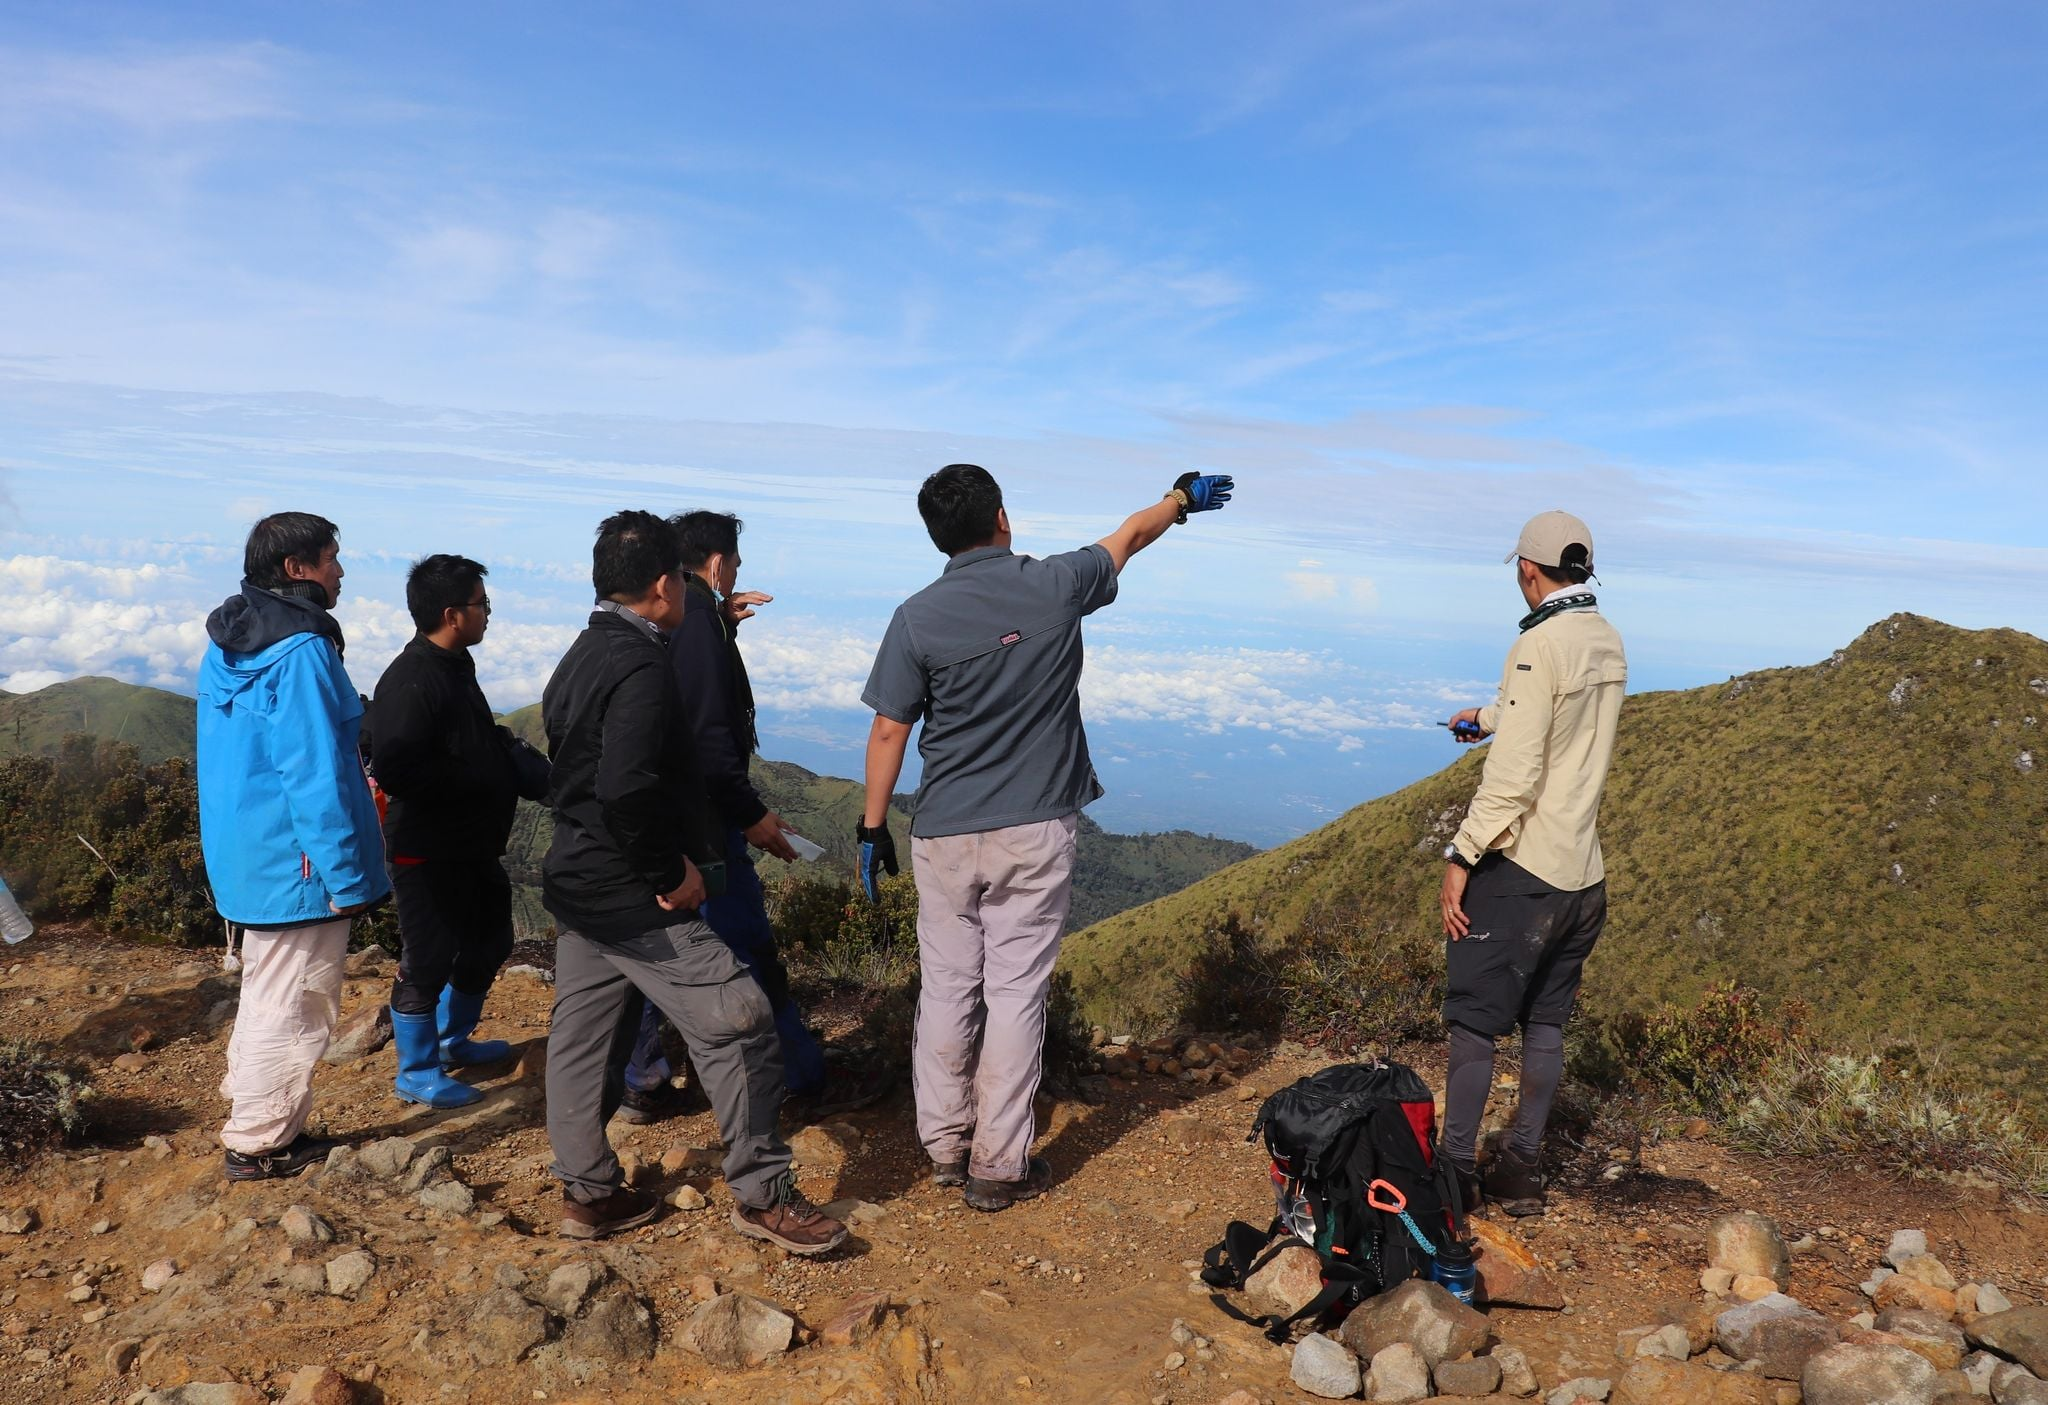 DENR inspecting Mt. Apo campsites and trails